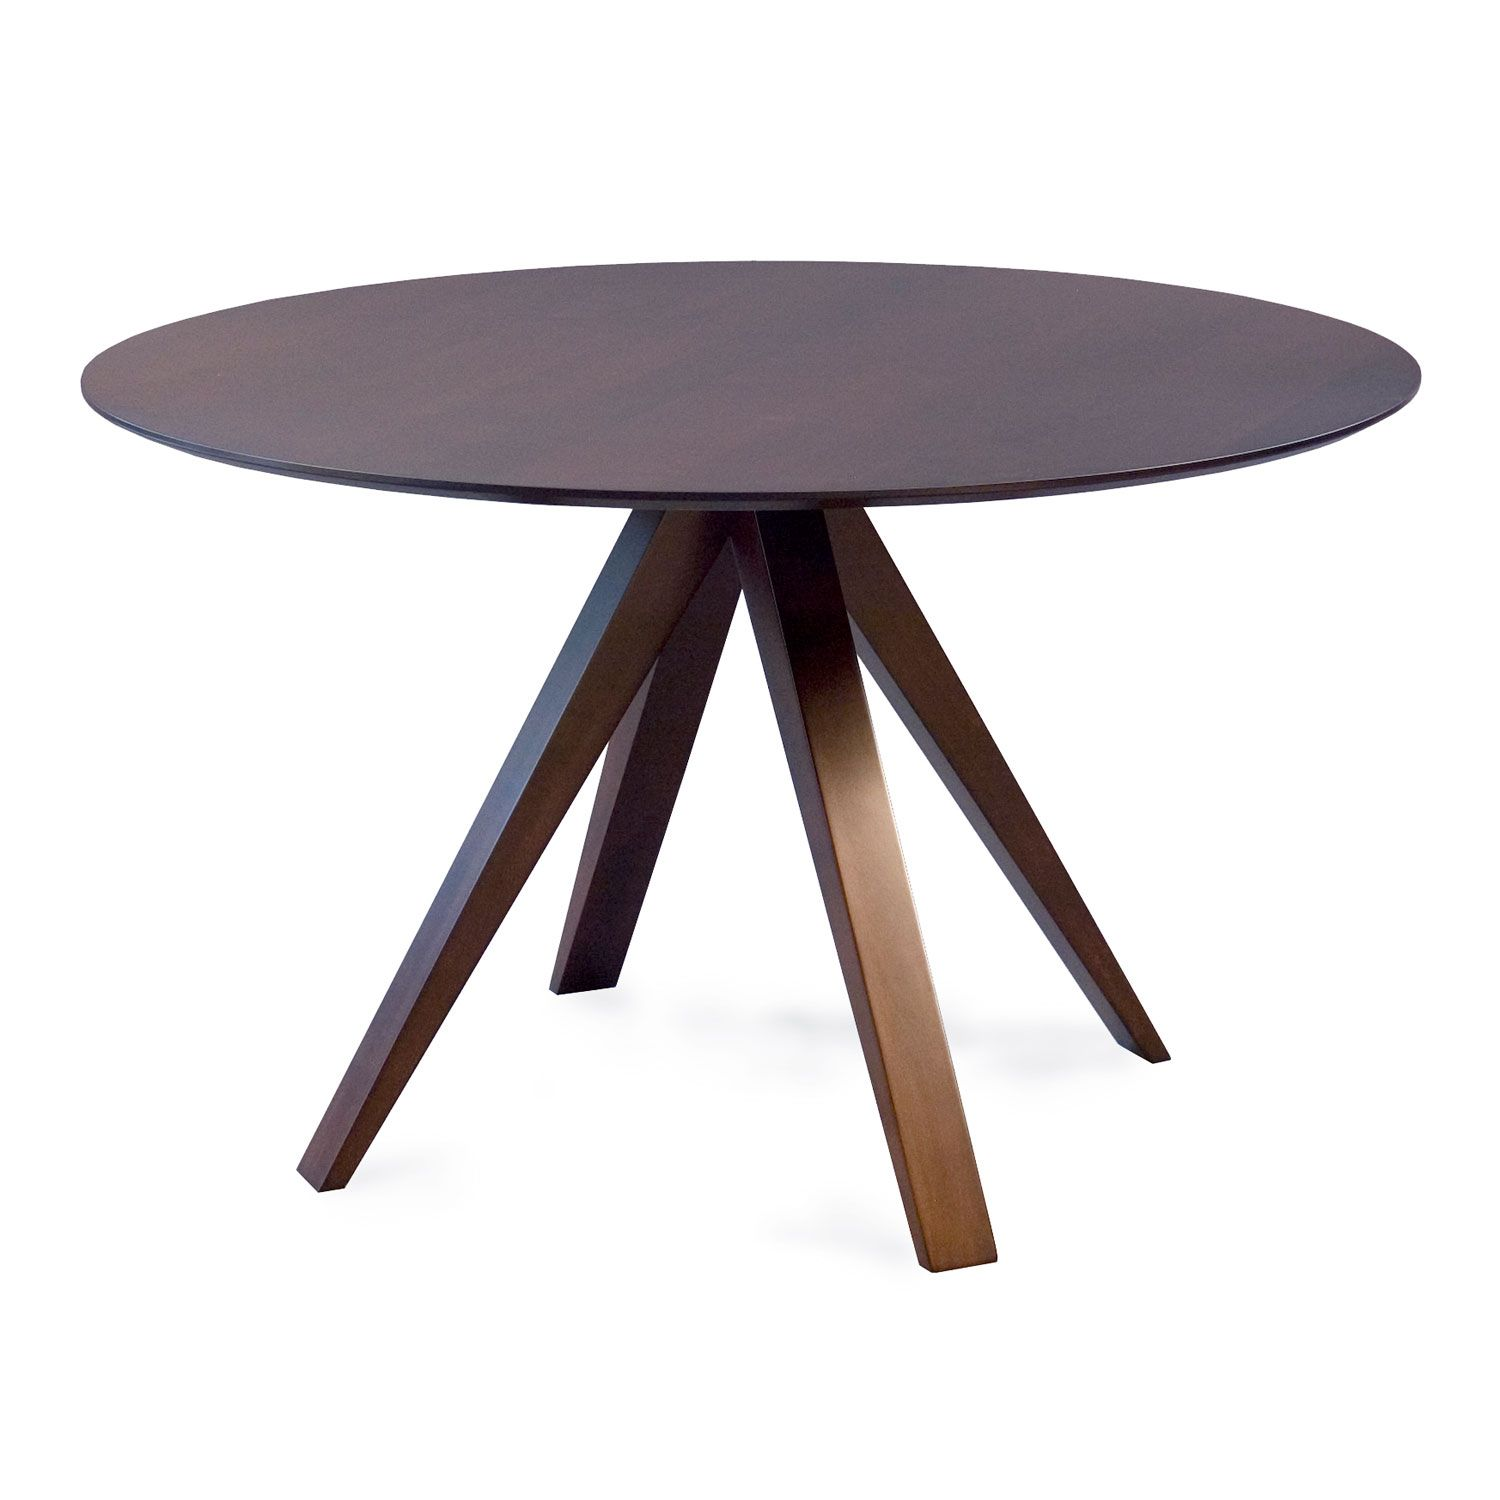 g black table umbrella patio inch round with pedestal outdoor dining metal